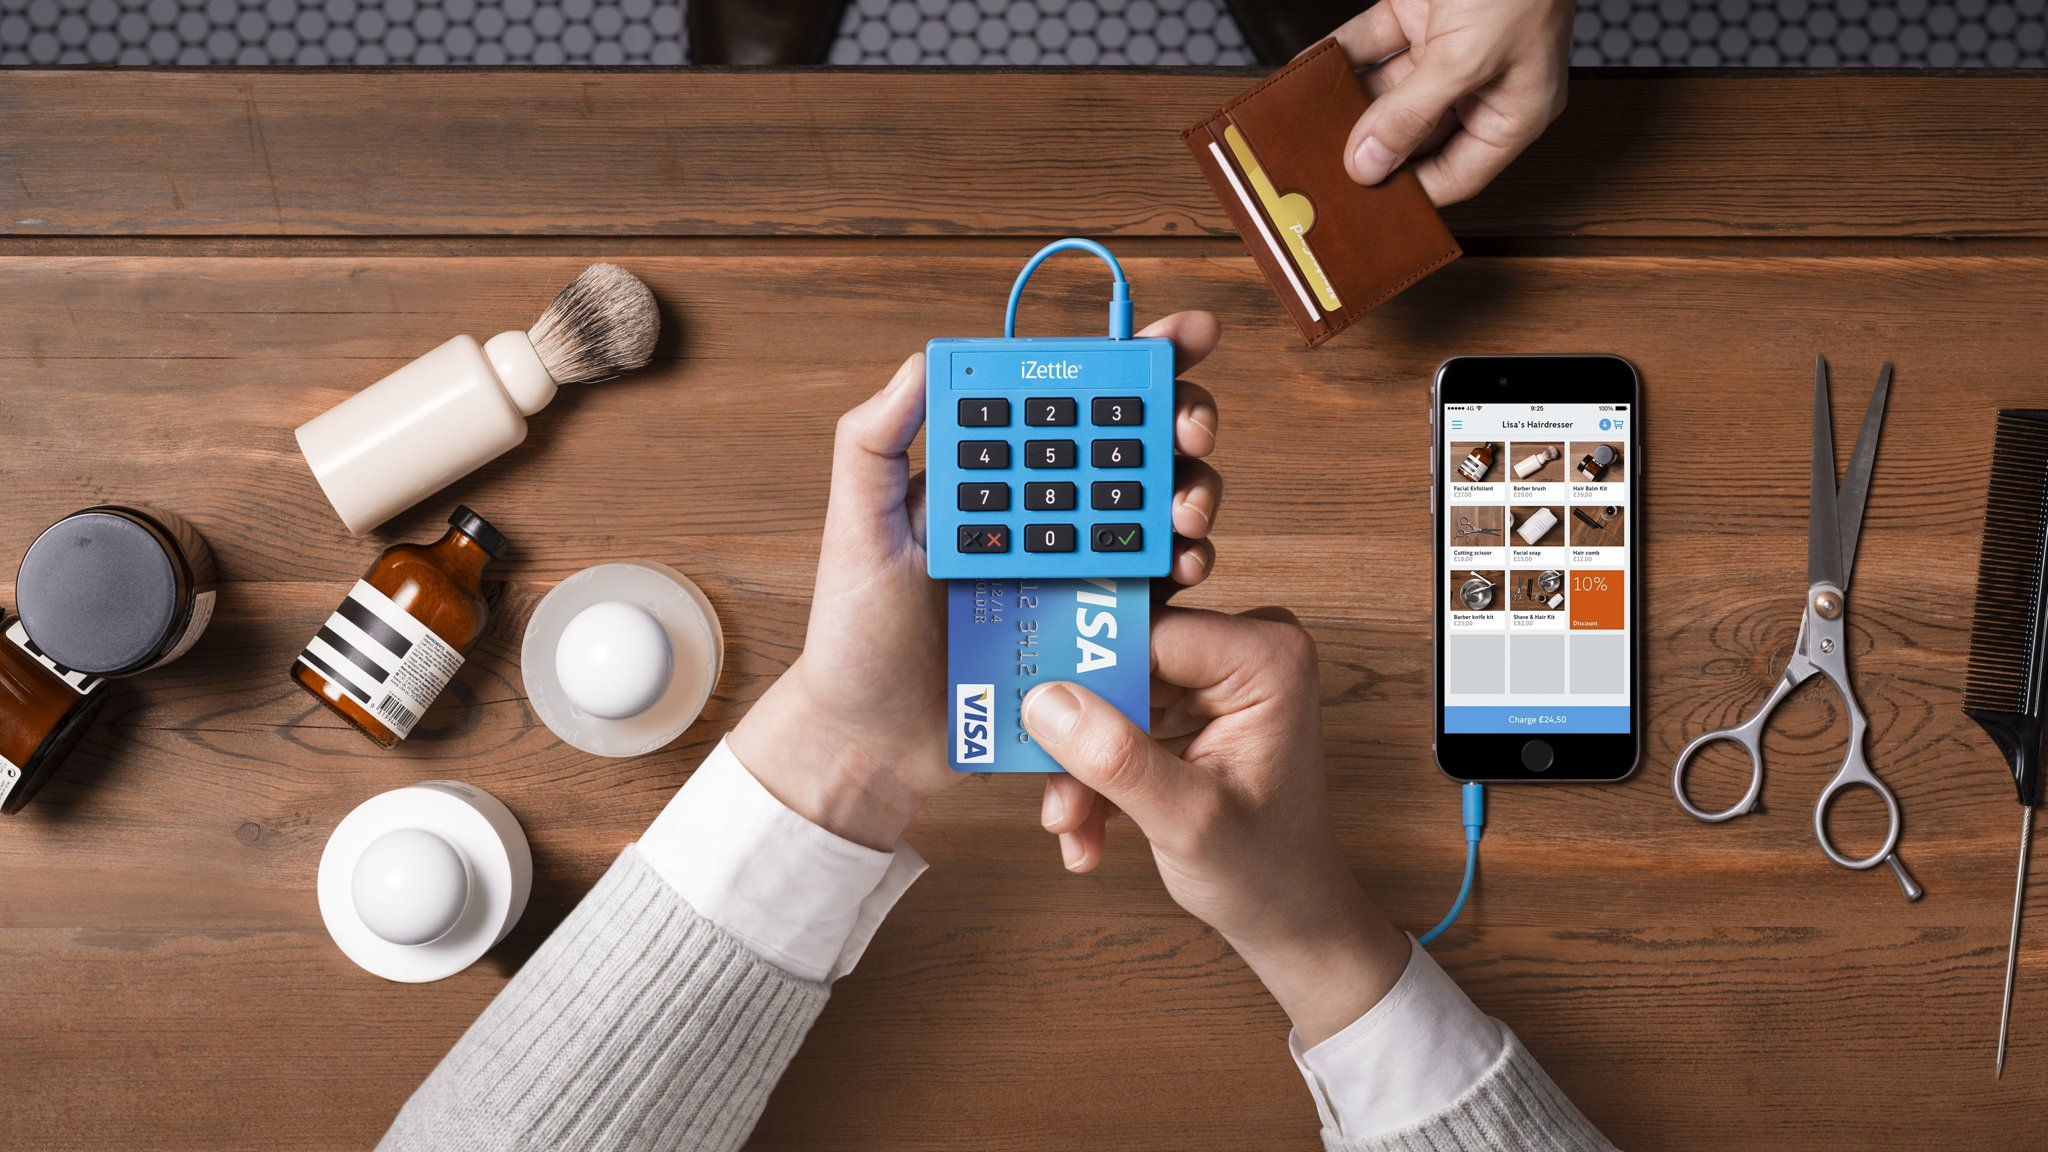 Swedish payments company izettle raises 60m on 500m valuation swedish payments company izettle raises 60m on 500m valuation financial times reheart Gallery